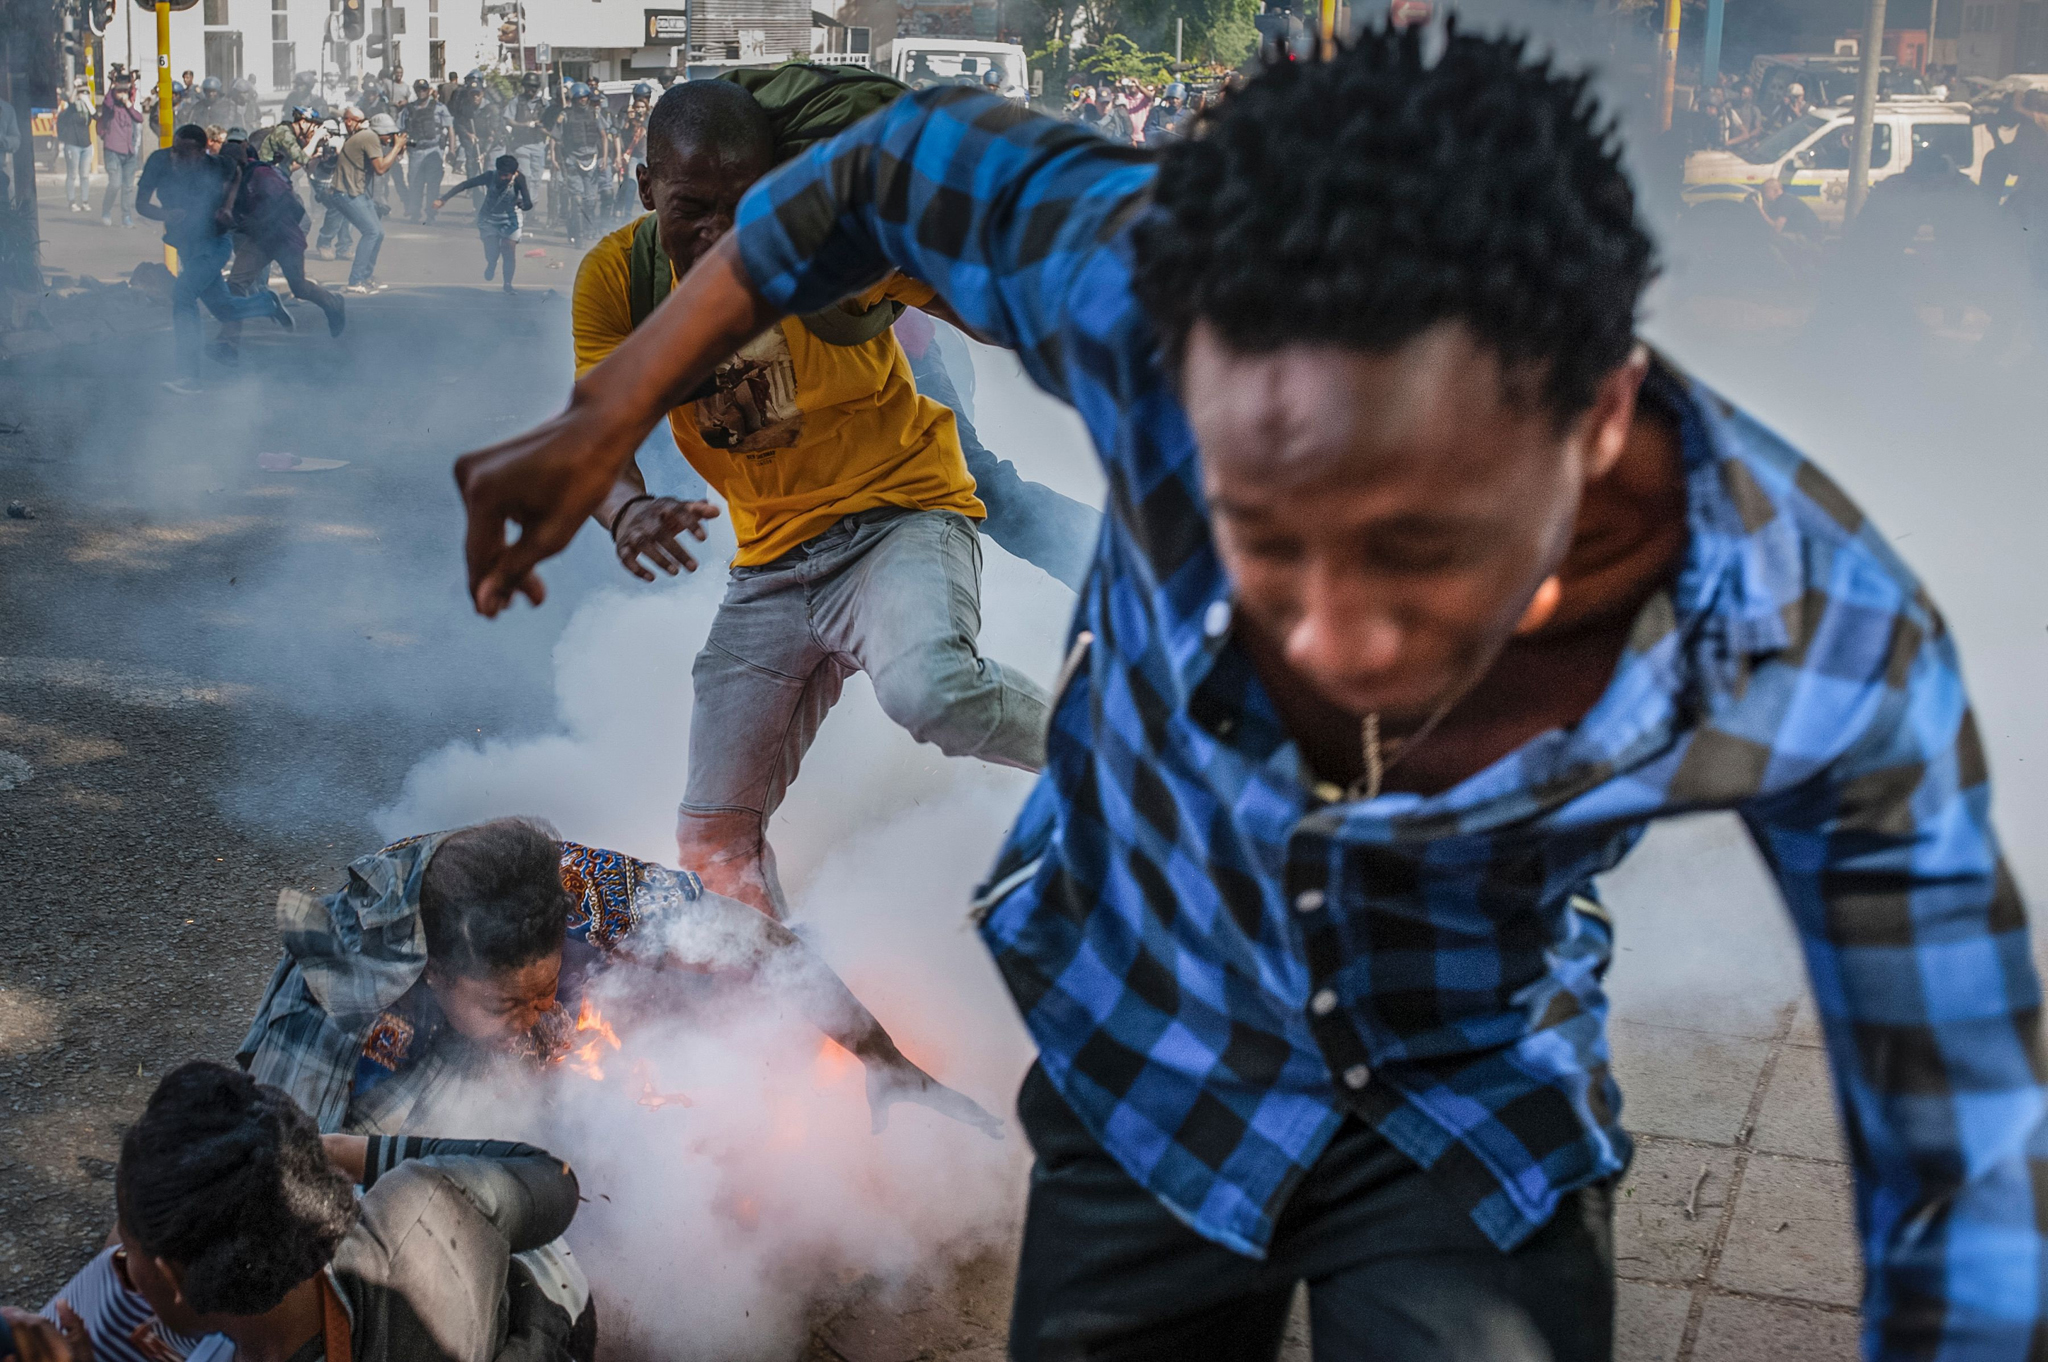 Students from the University of the Witwatersrand are injured by a police grenade during a protest against university fee increases